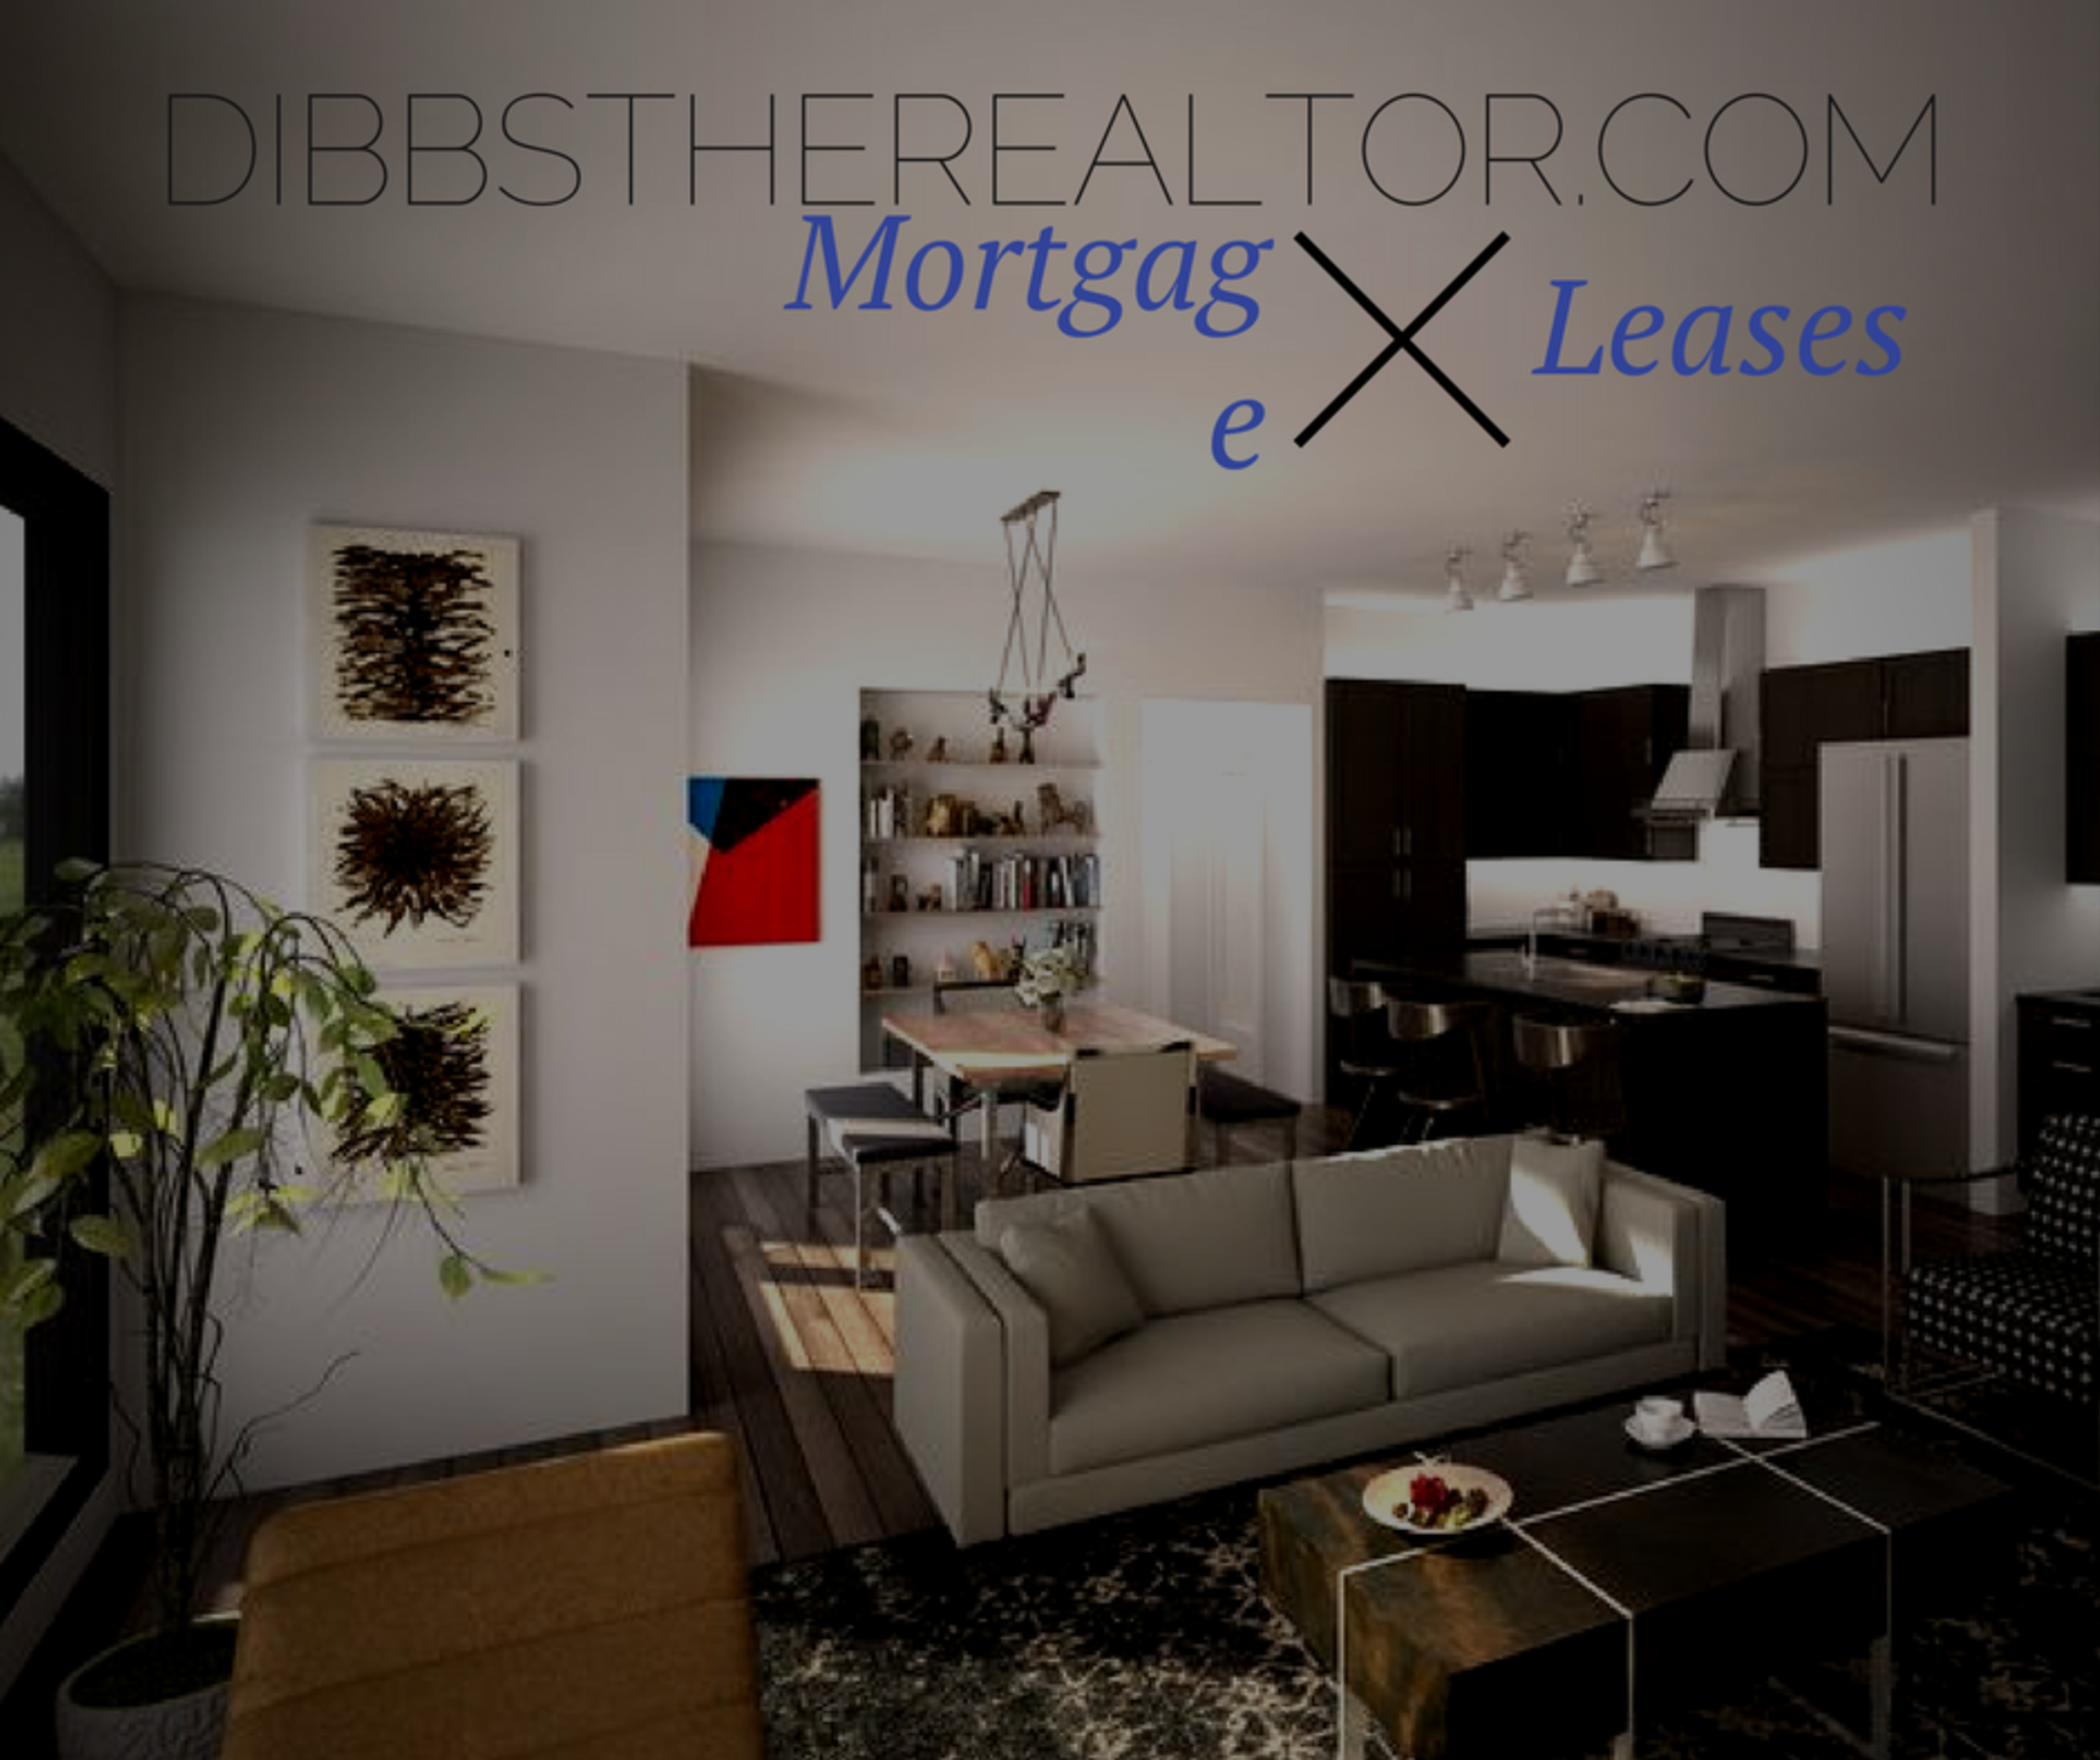 A Mortgage is Not A Lease